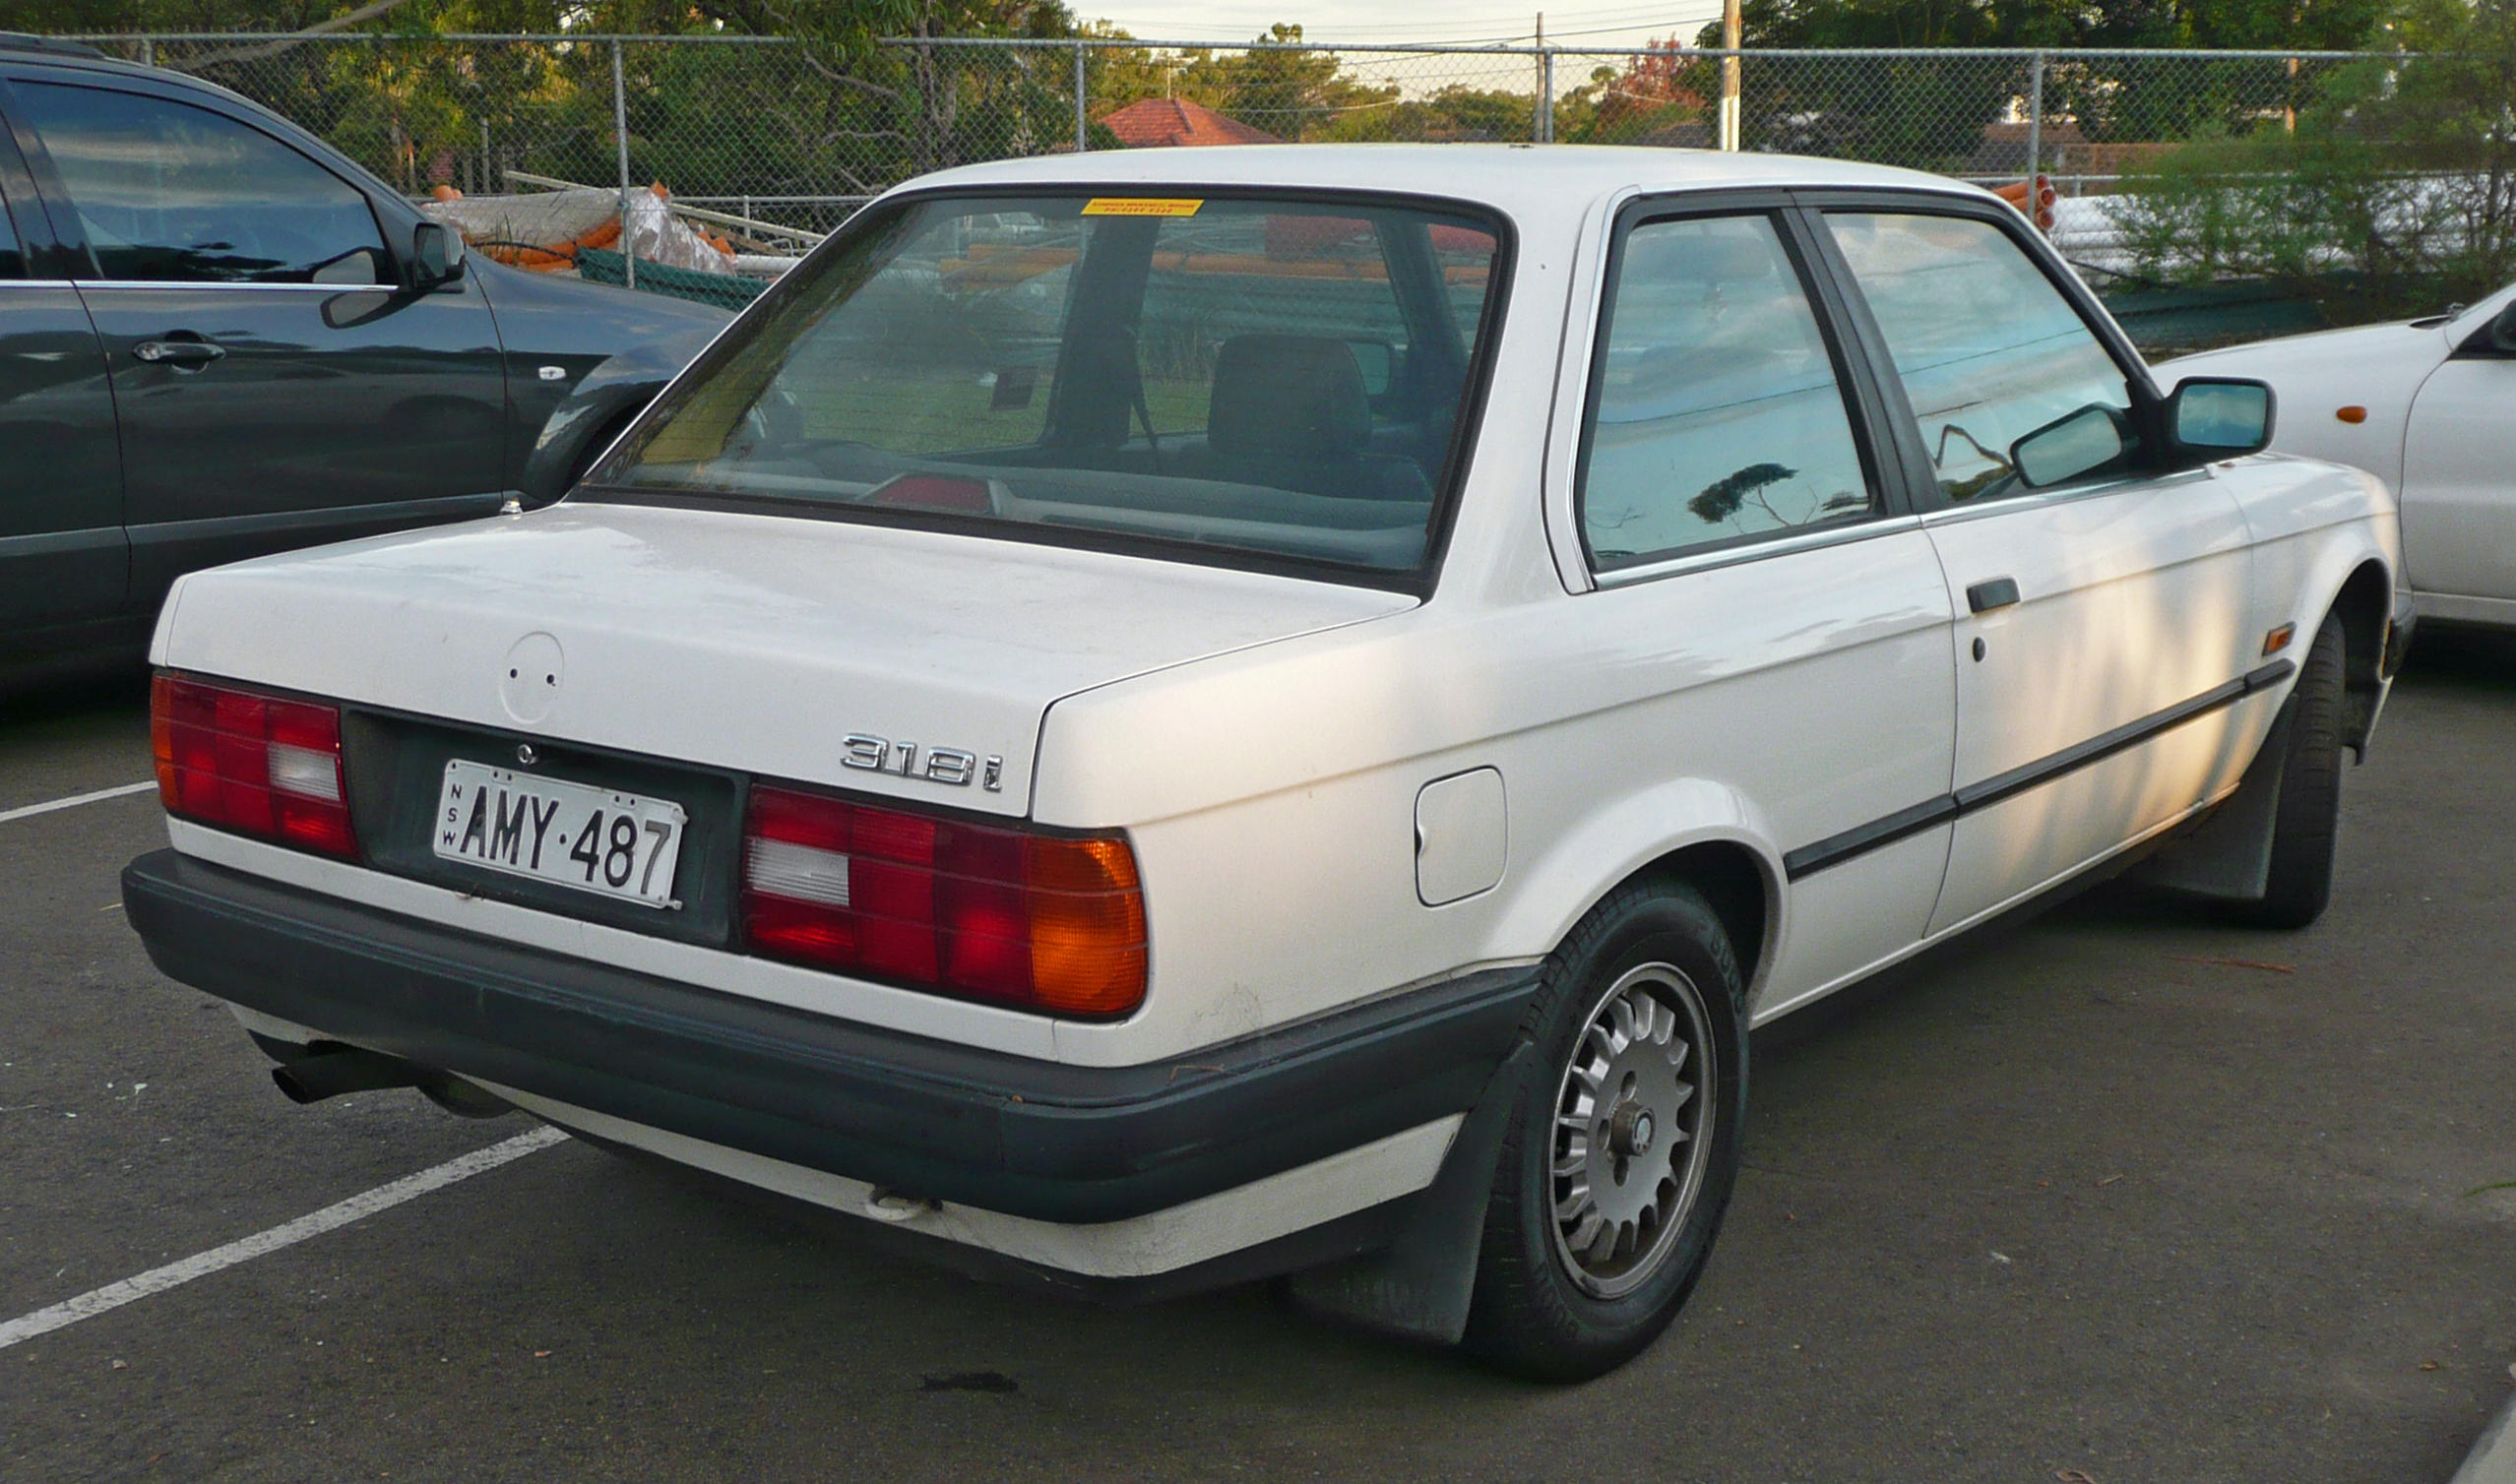 File1988-1991 BMW 318i (E30) 2-door sedan 02. & File:1988-1991 BMW 318i (E30) 2-door sedan 02.jpg - Wikimedia Commons pezcame.com